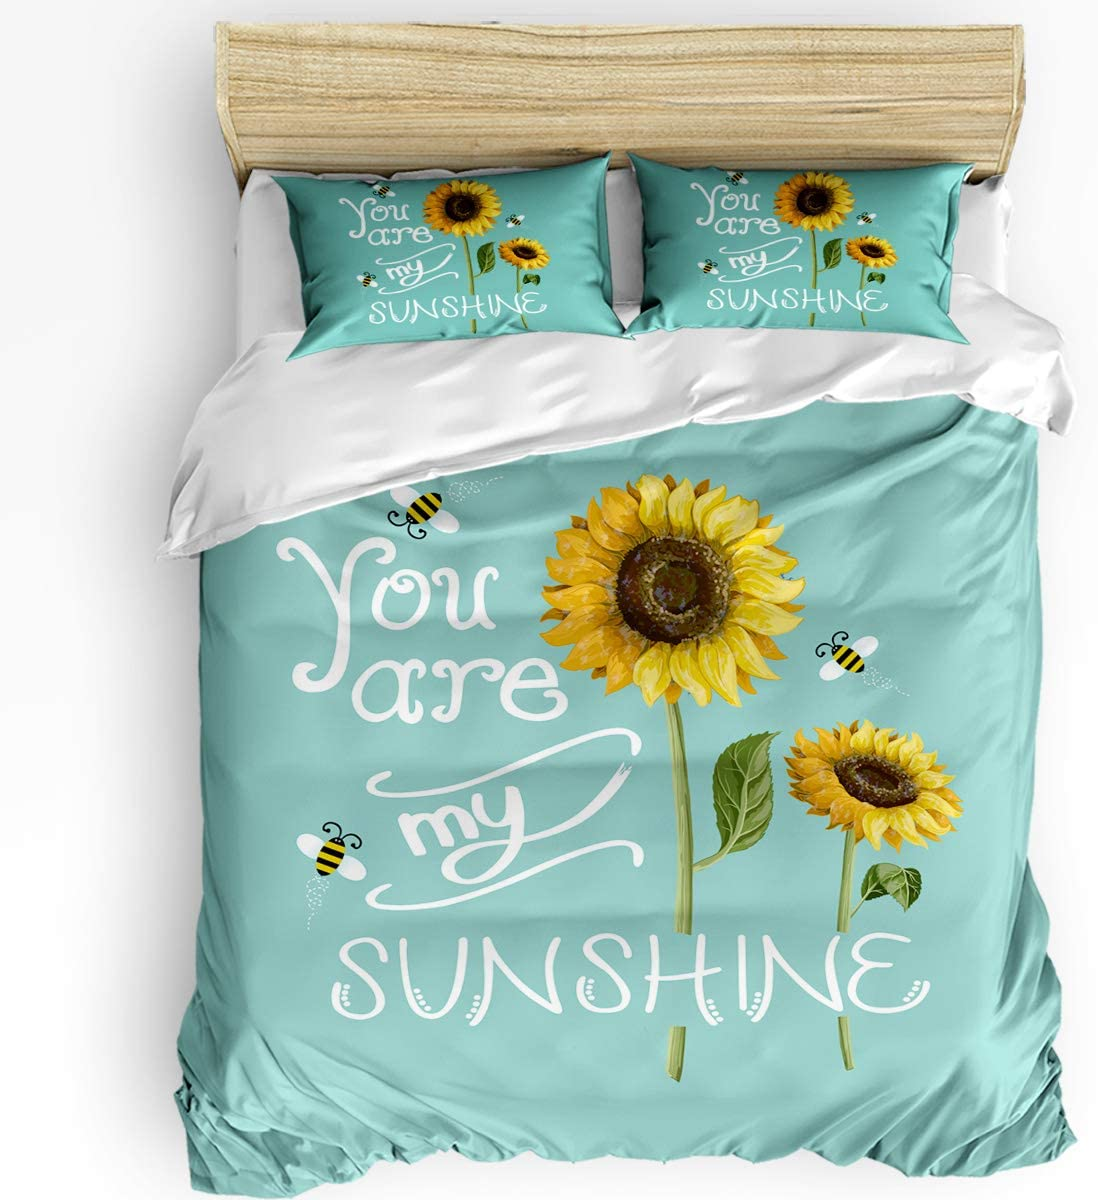 3 Piece Bedding Set Comforter Cover Full Size Sunflowers And Bees You Are My Sunshine Teal Background 3 Pcs Duvet Cover Set With Zipper Closure For Childrens Kids Teens Adults Home Kitchen